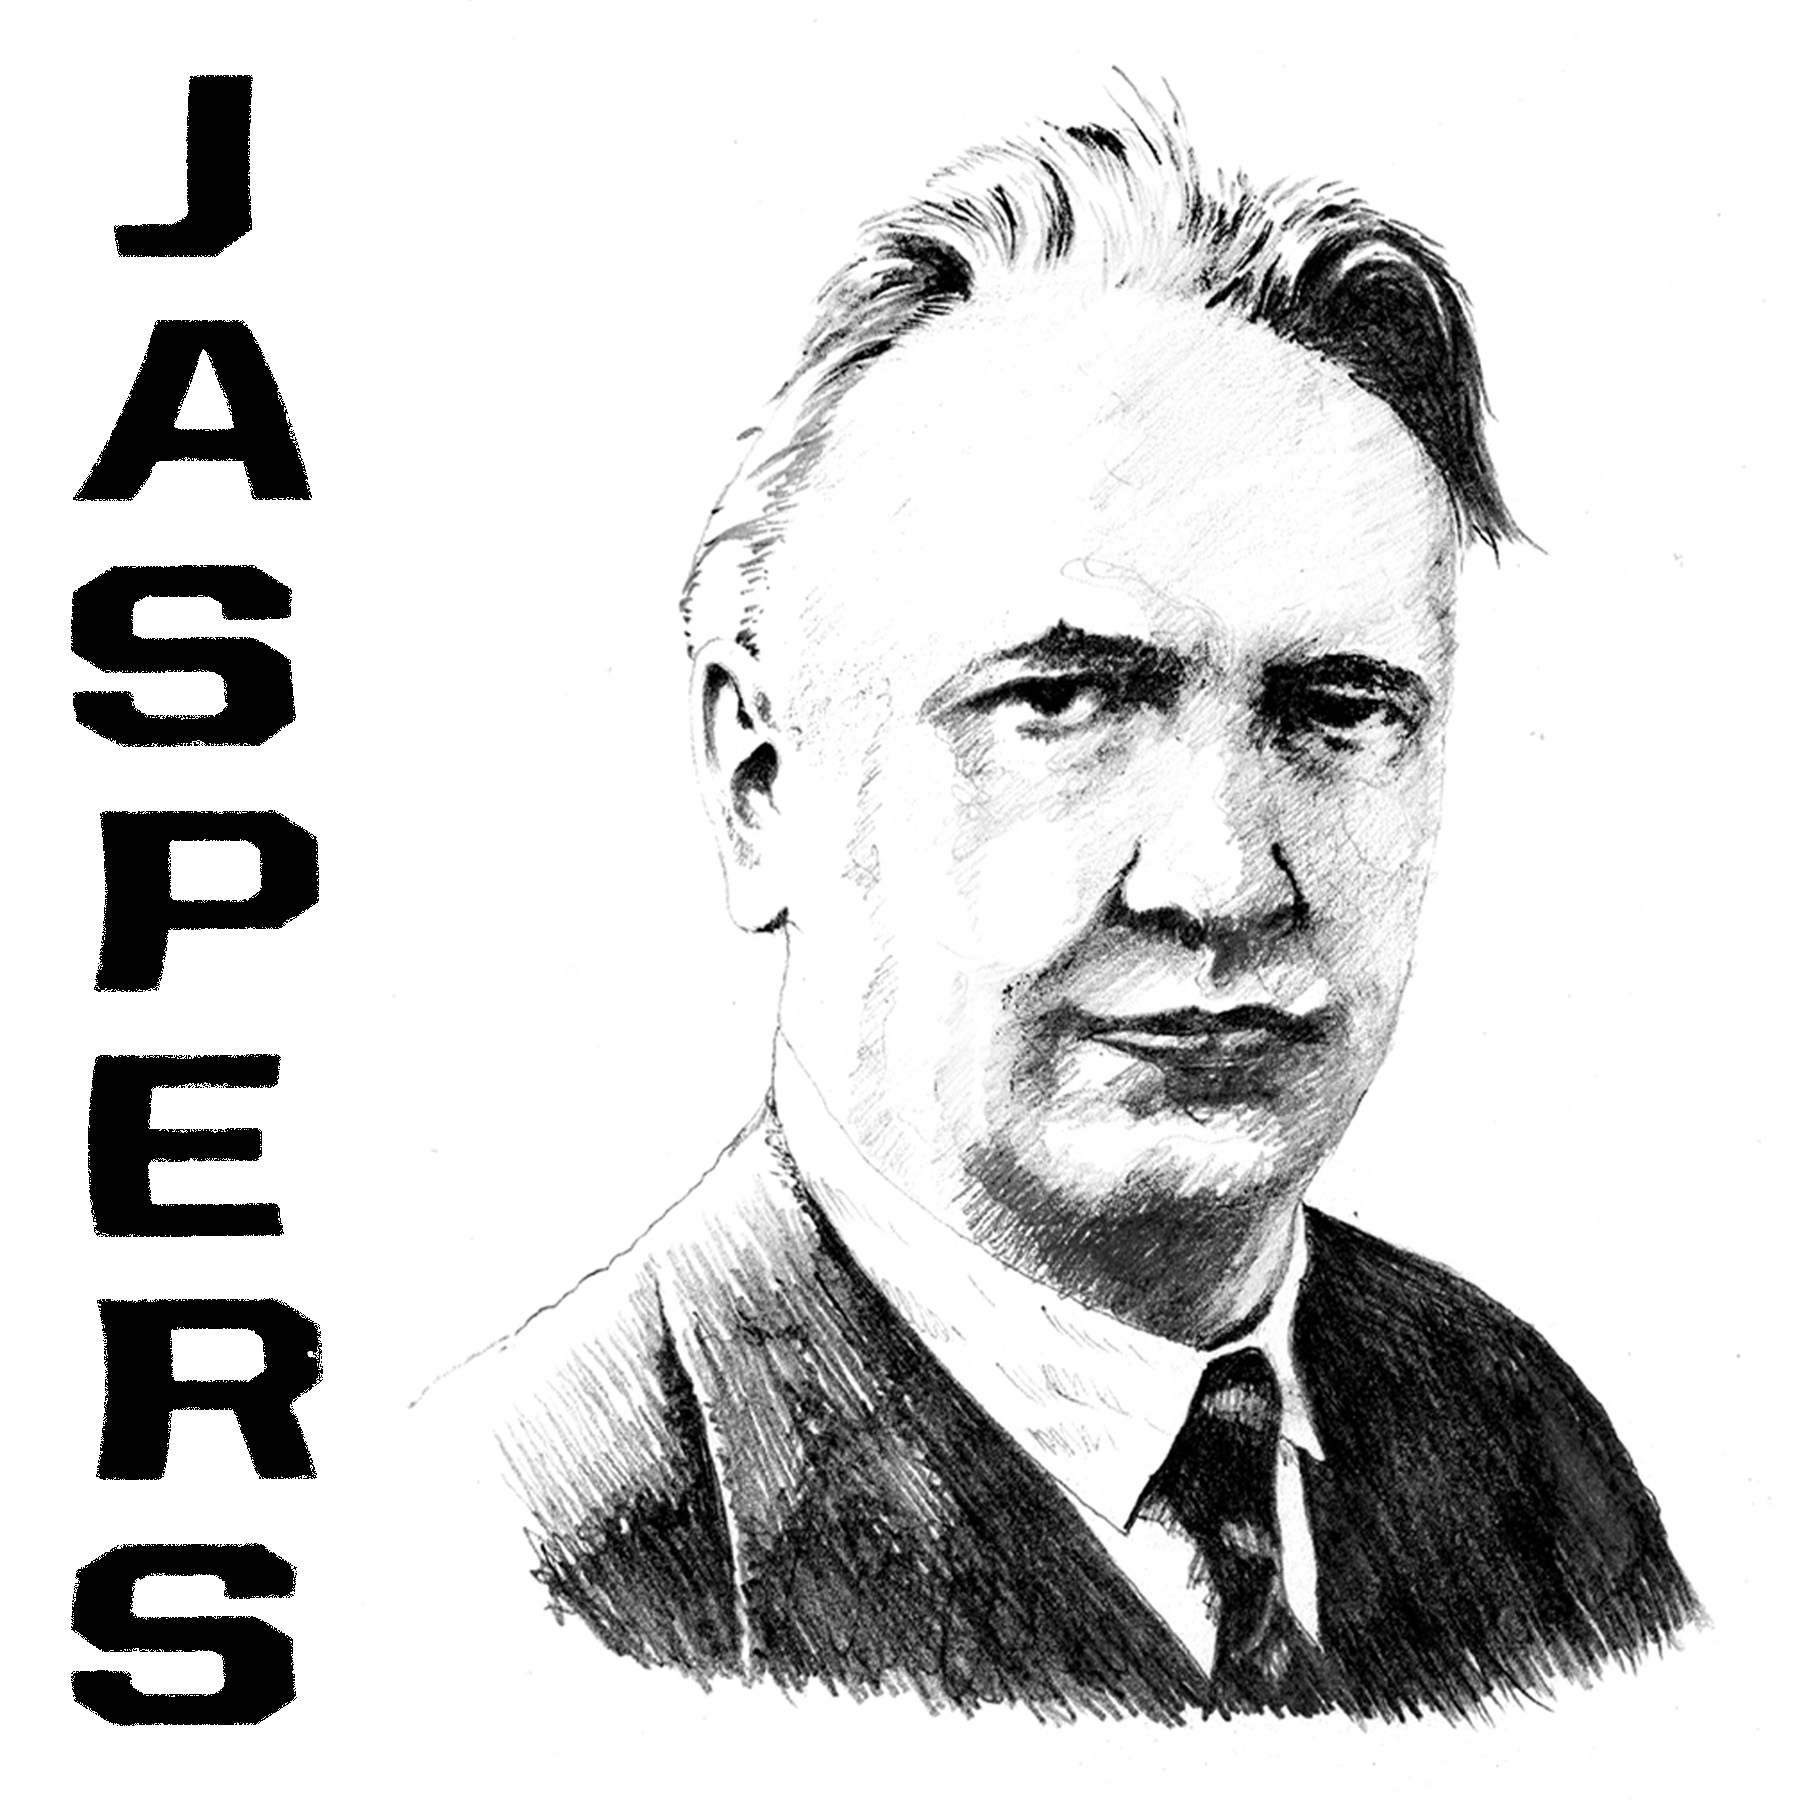 karl jaspers Karl jaspers: karl jaspers, german philosopher, one of the most important existentialists in germany, who approached the subject from man's direct concern with his own existence.